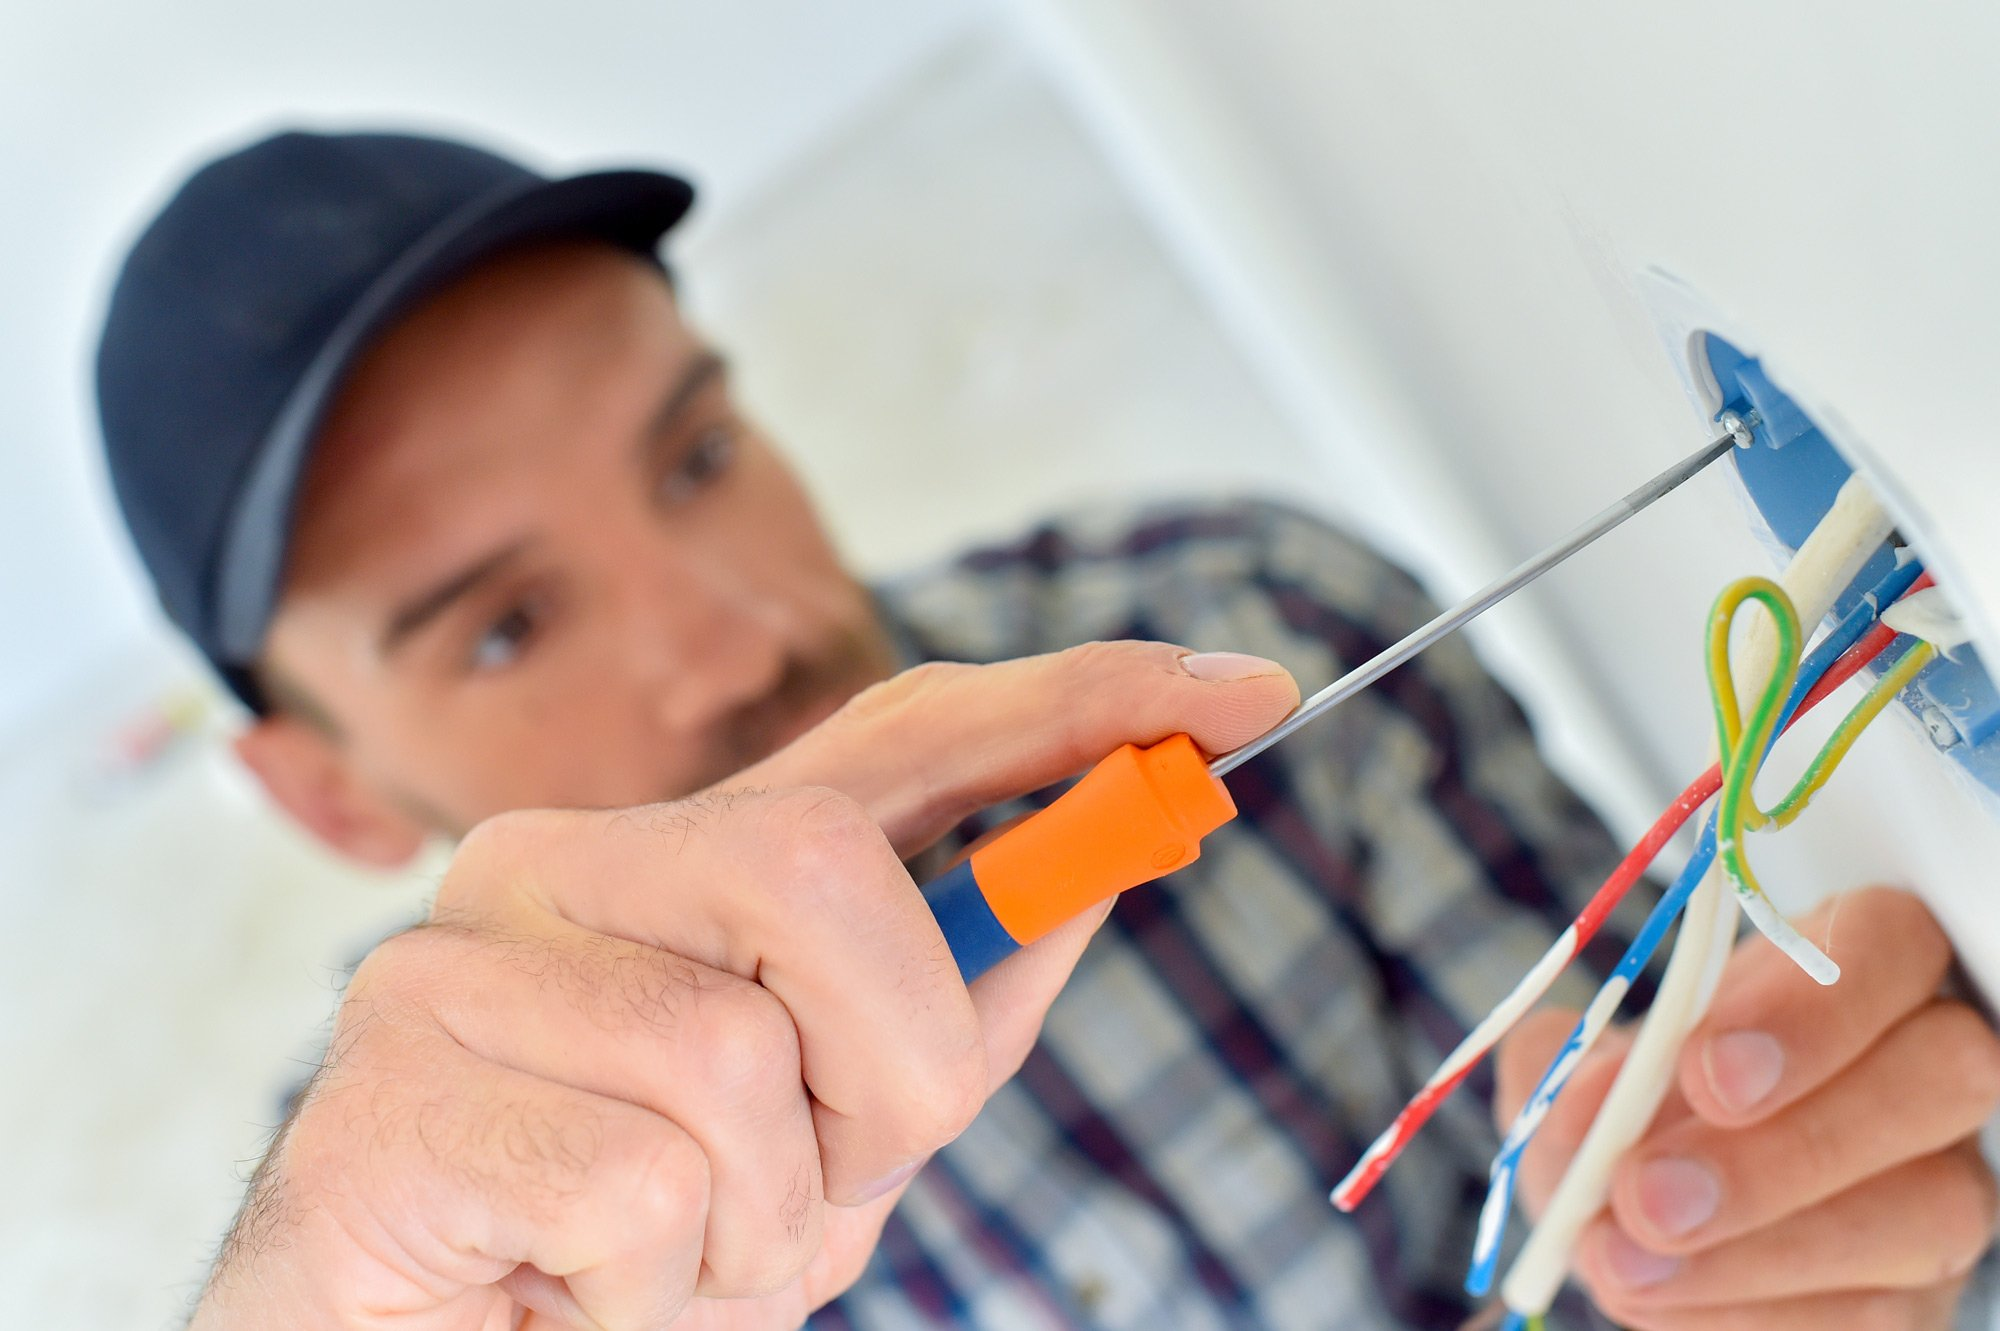 Professional doing the electrical repair